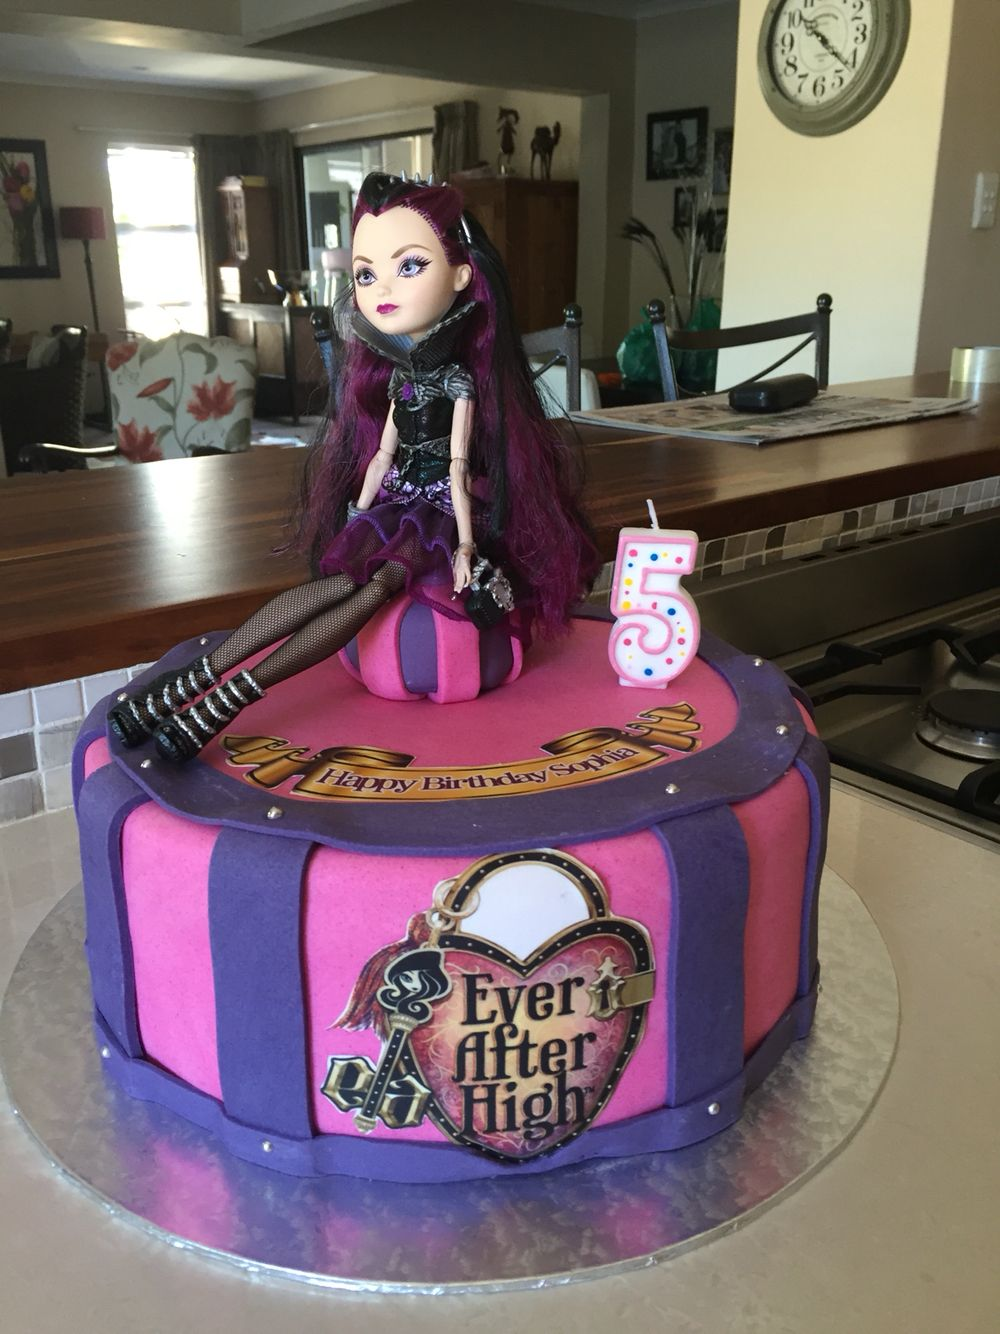 Swell Raven Queen Birthday Cake Ever After High Party With Images Personalised Birthday Cards Veneteletsinfo